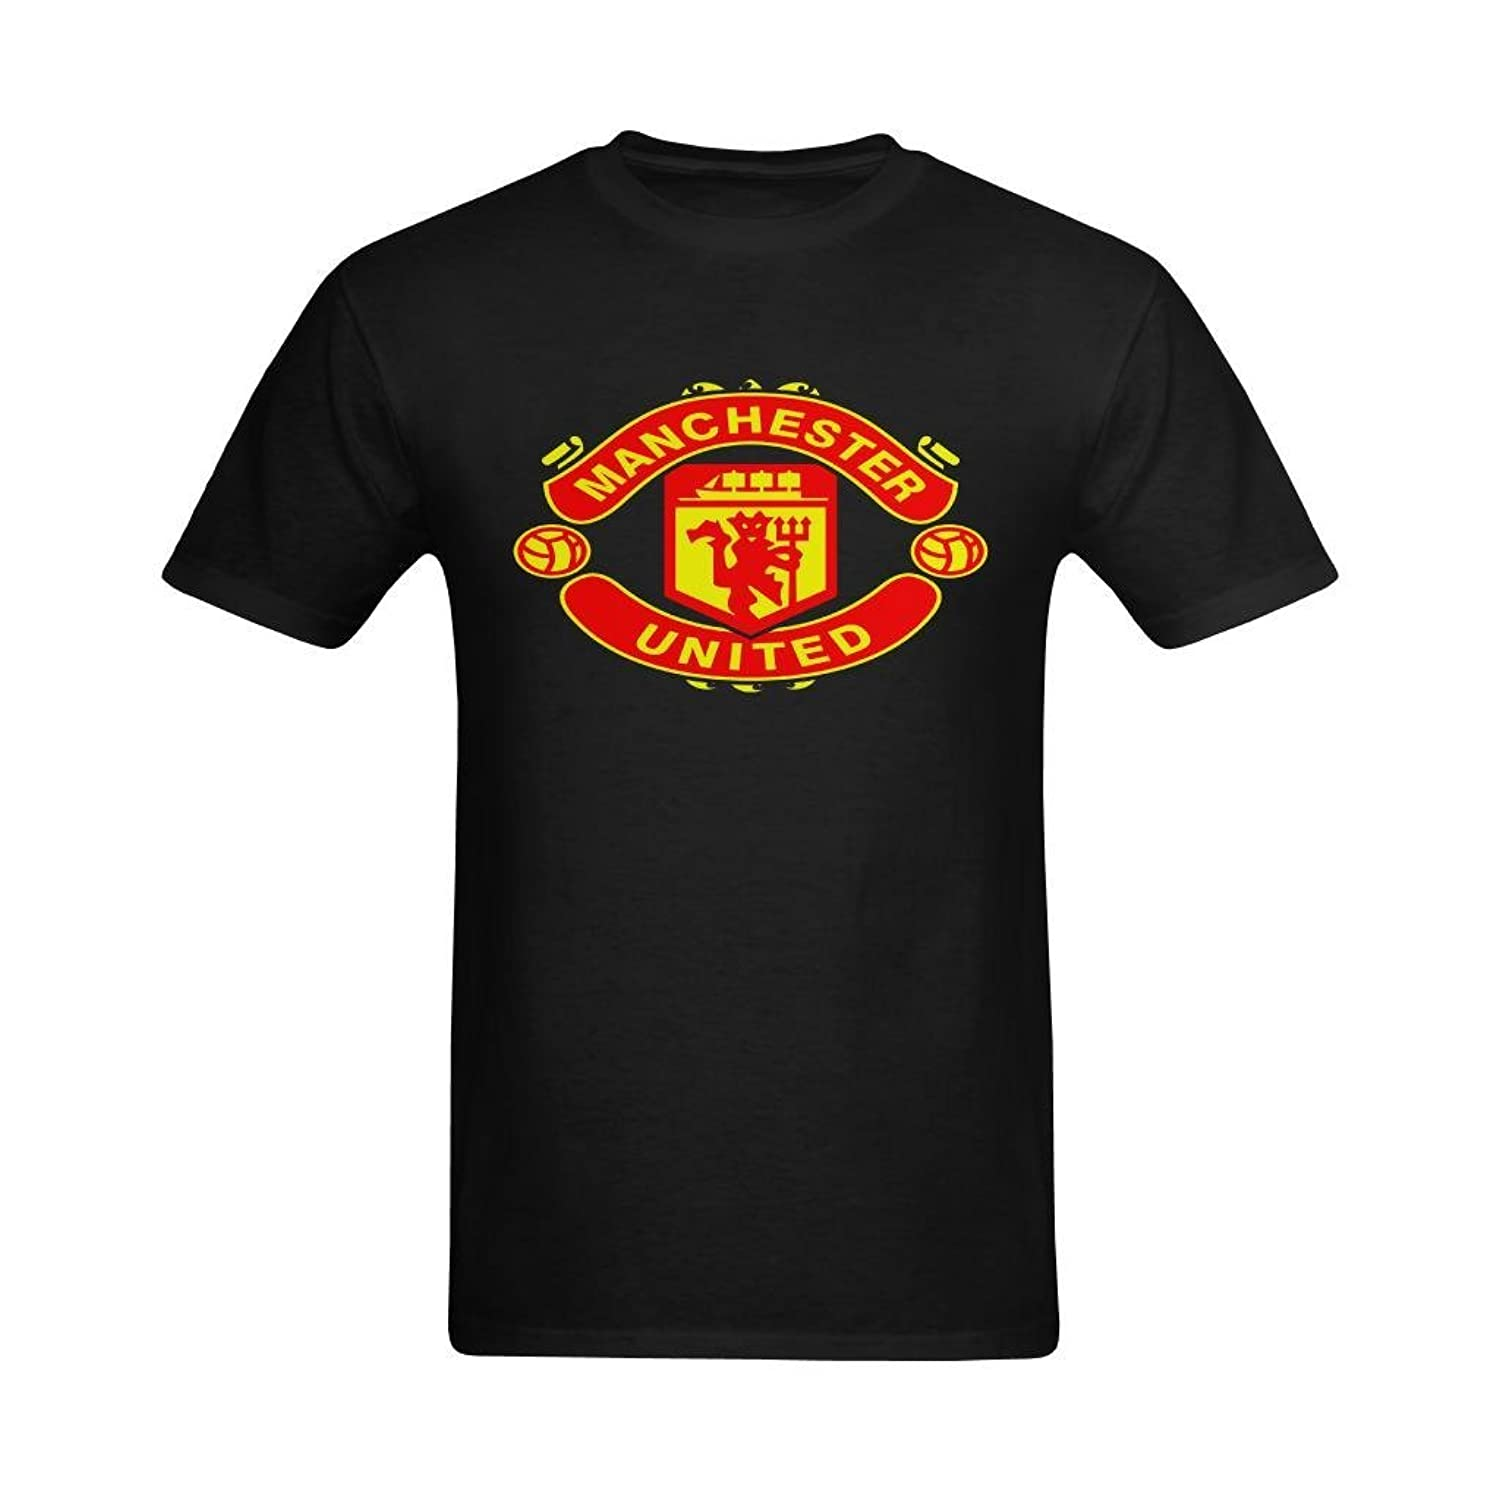 Design t shirt manchester united - Buy Zoey De Men S Manchester United F C The Red Devils Design T Shirt Cool T Shirts Us Size Xl Shop Top Fashion Brands T Shirts At Amazon Com Free